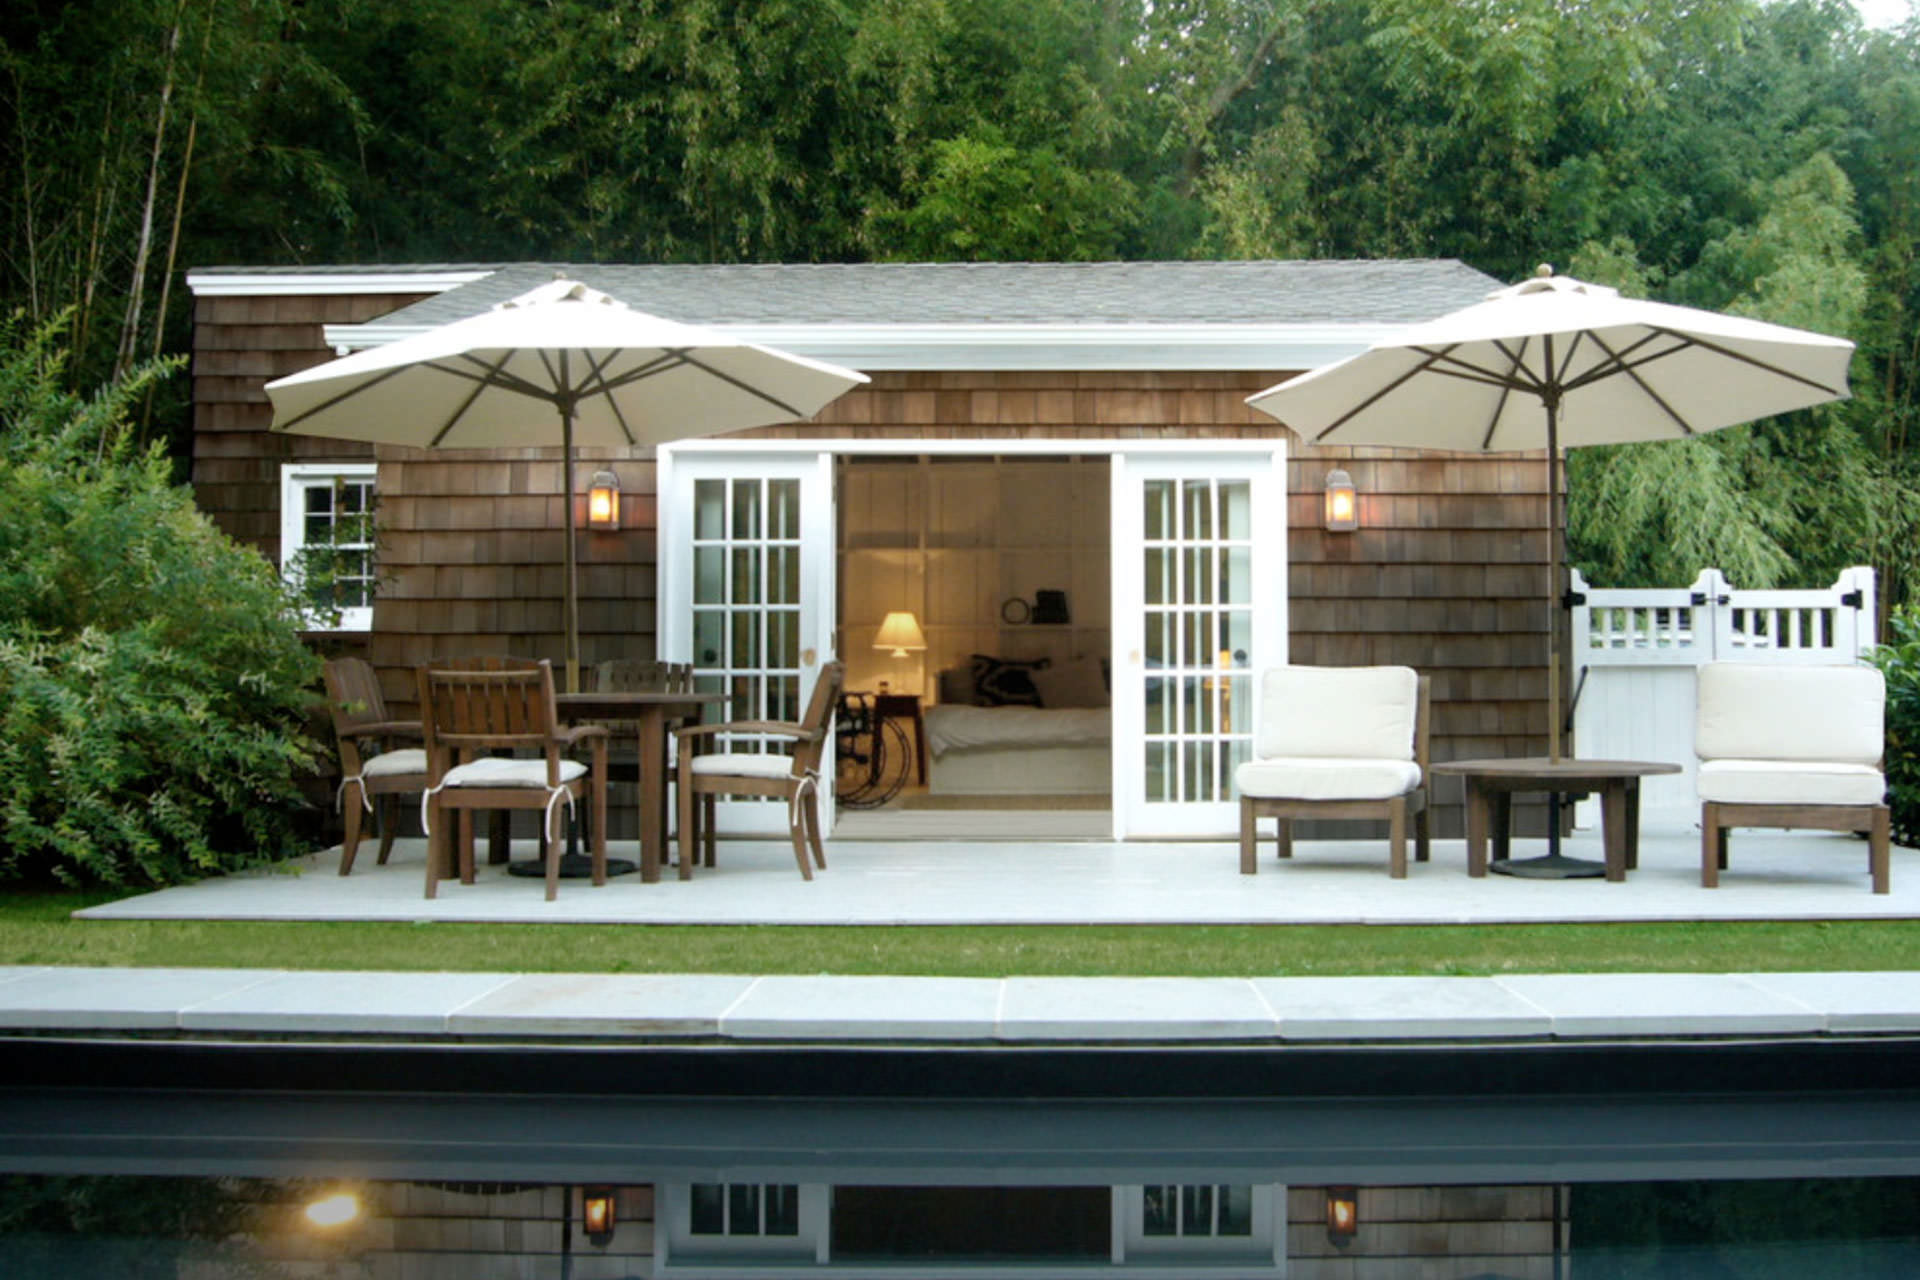 Keep cool with these five patio shade ideas shadefx canopies for Small patio shade ideas